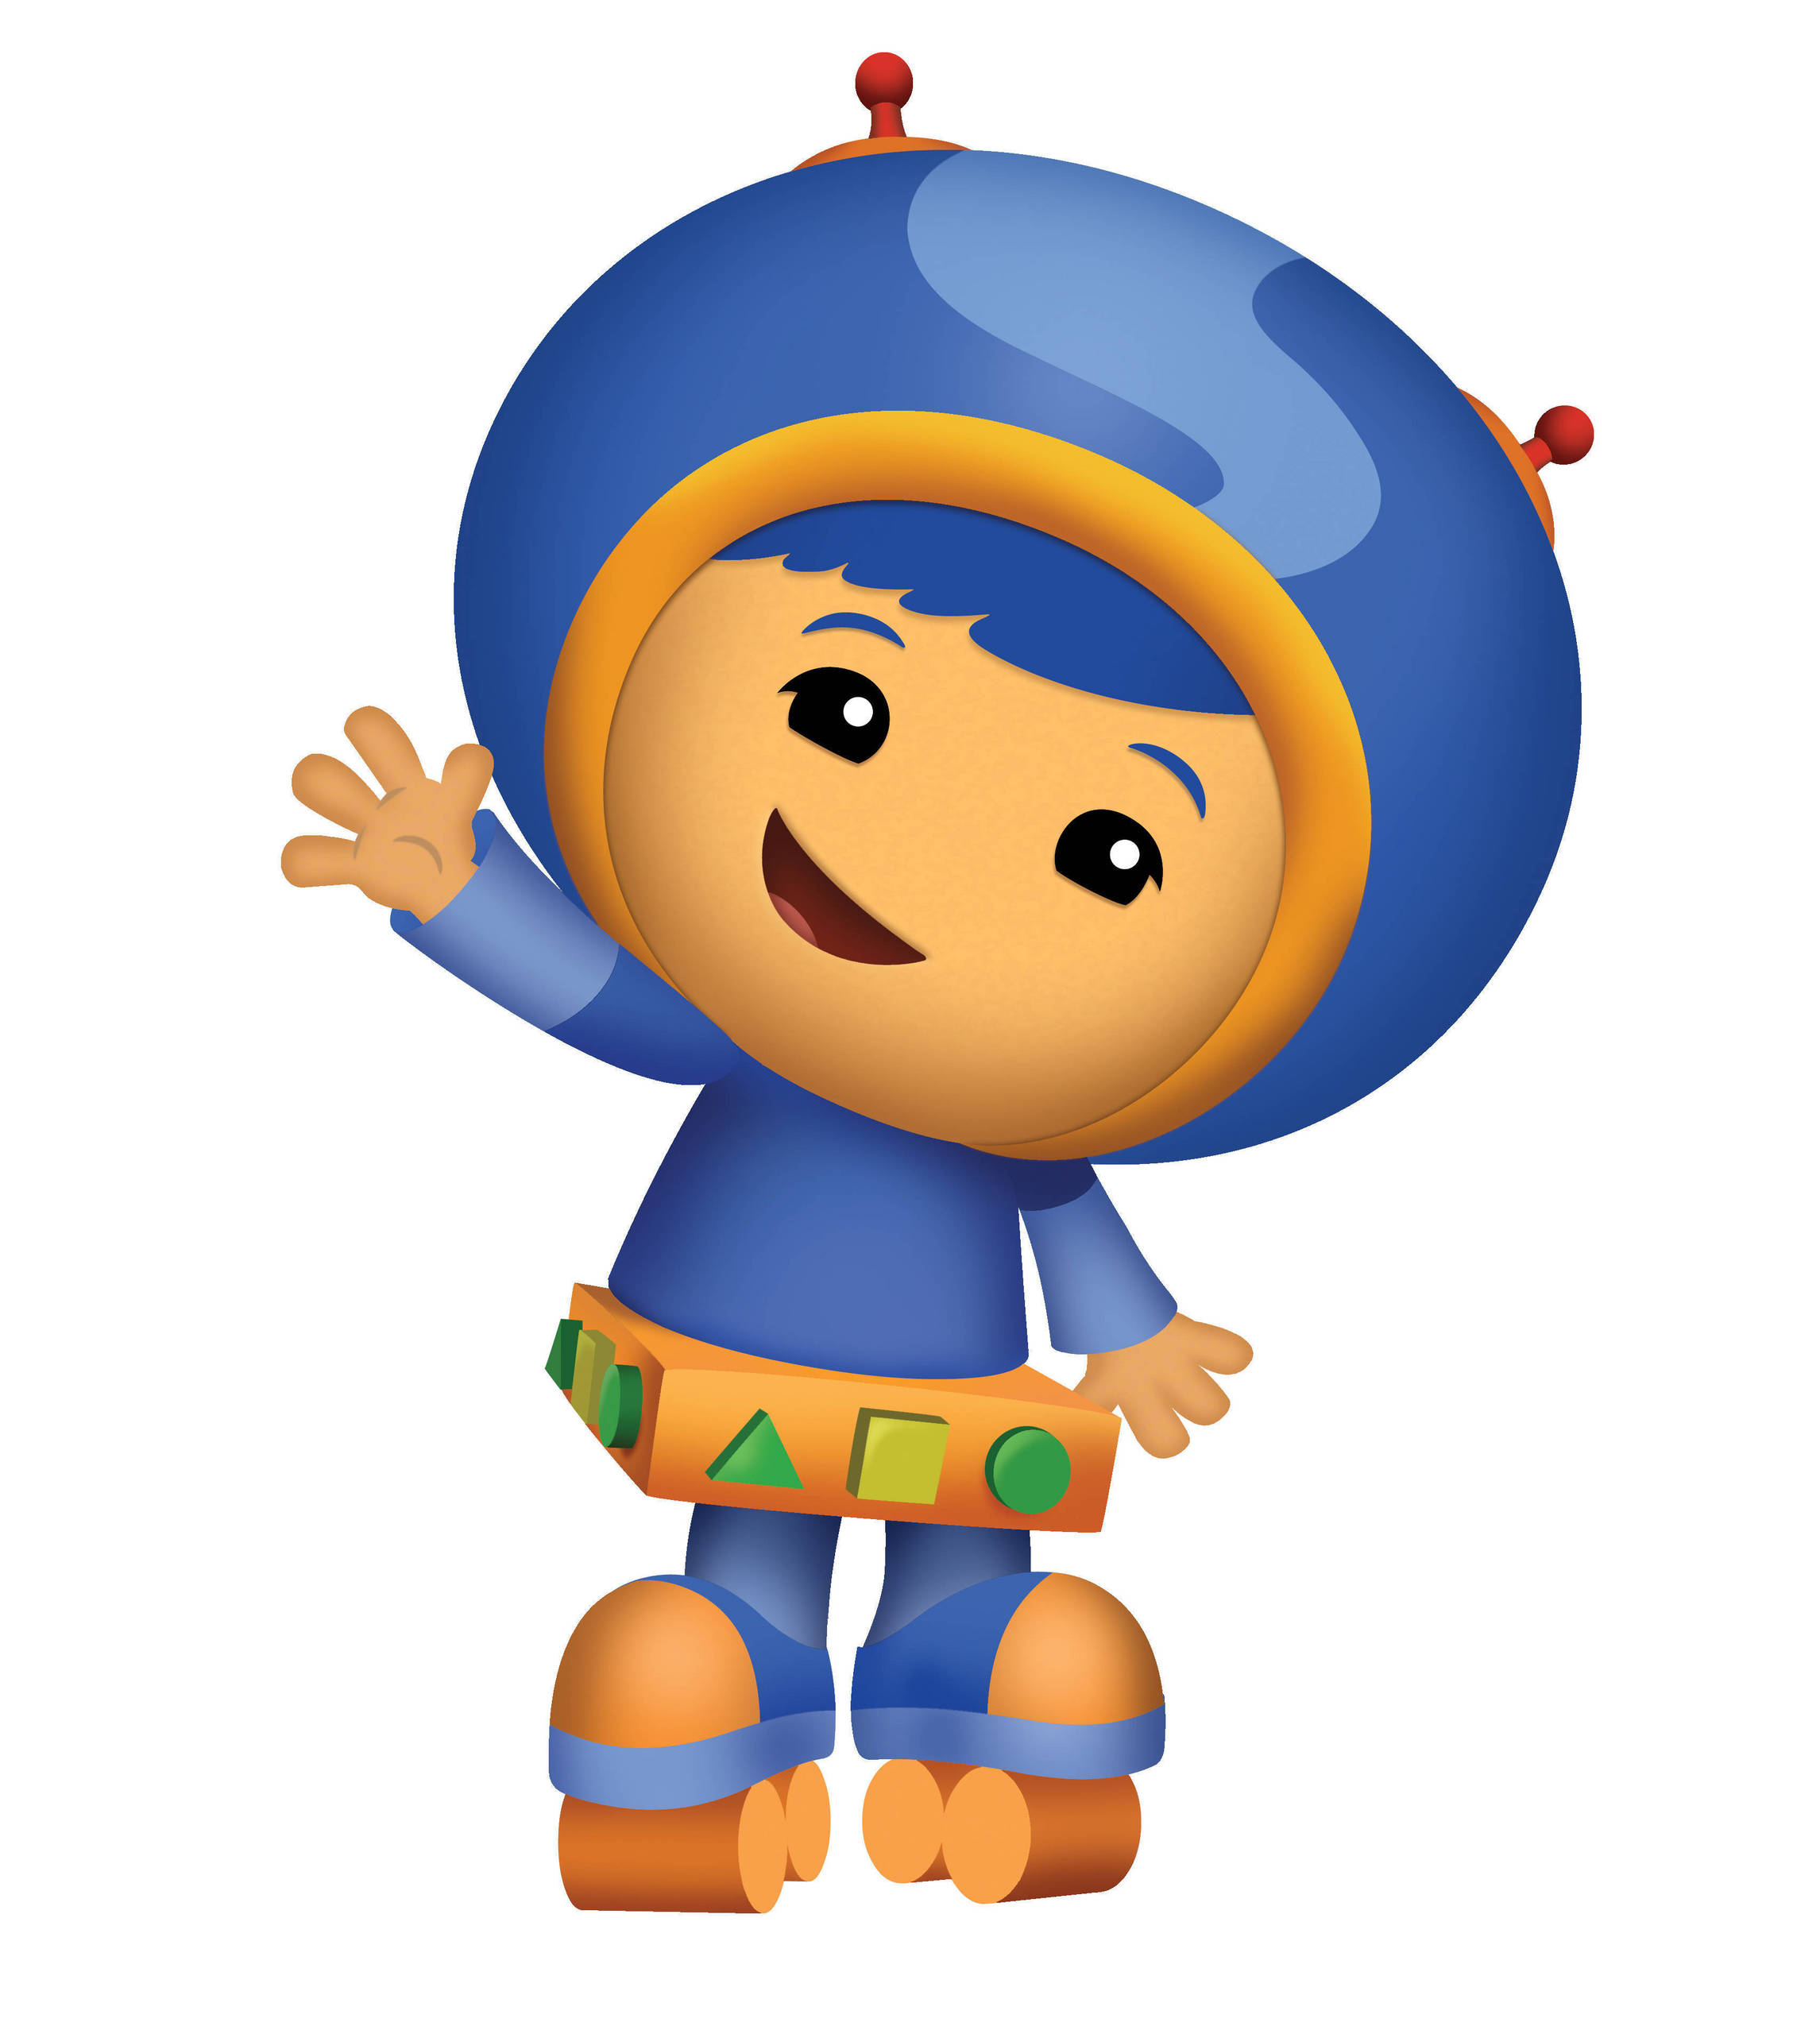 Kleurplaten Team Umizoomi.Geo Team Umizoomi Coloring Pages Home Gt Brands Gt Team Umizoomi Gt